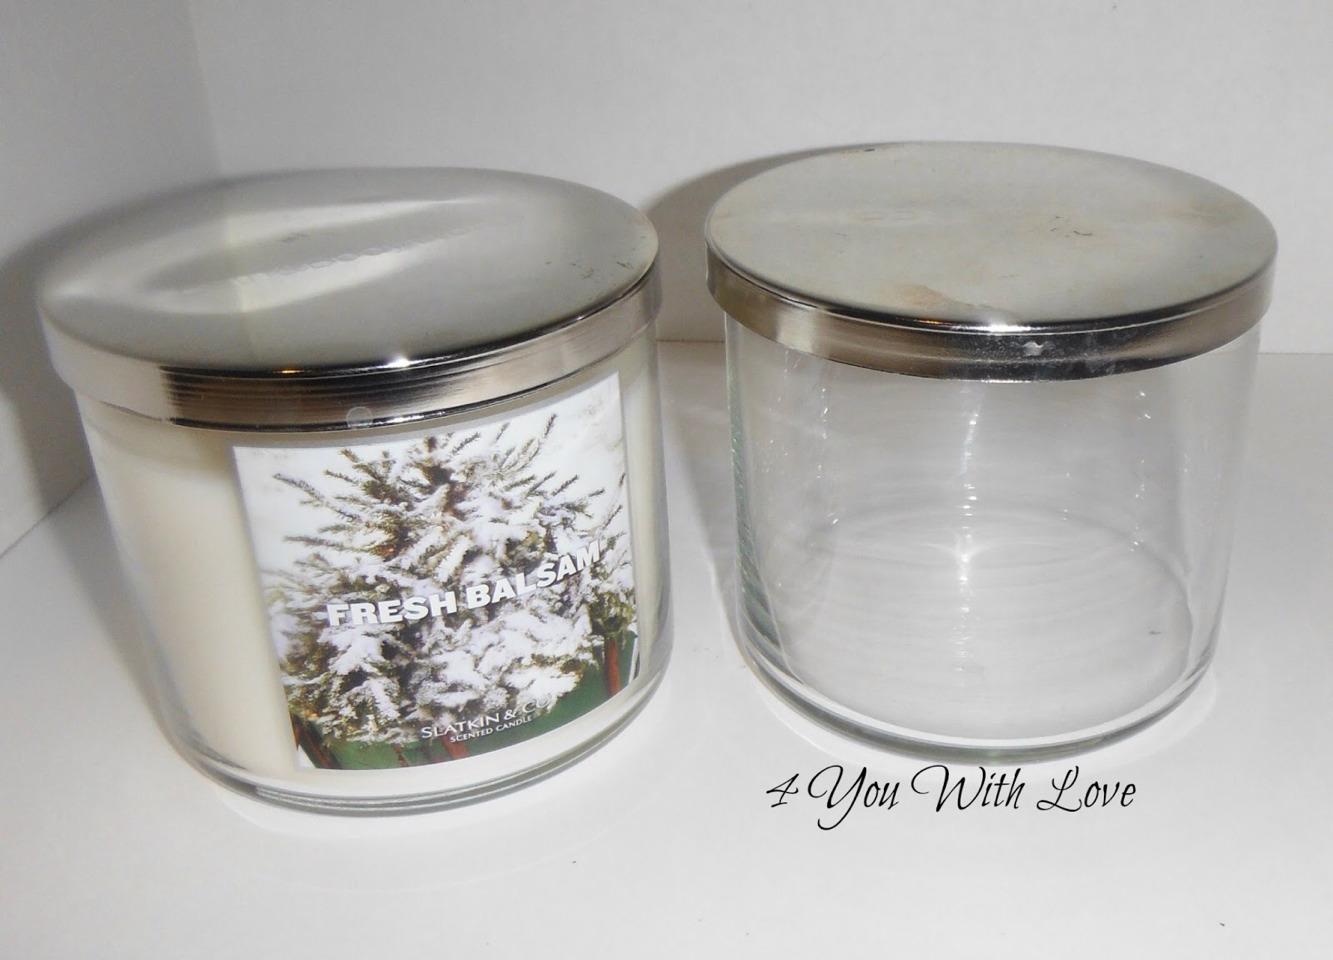 Empty out the remaining wax in your candle. My favorite way is to put the jars in boiling water, wait for it to melt away and dump the wax into a ziploc for disposal. Wipe down the jar afterwards.